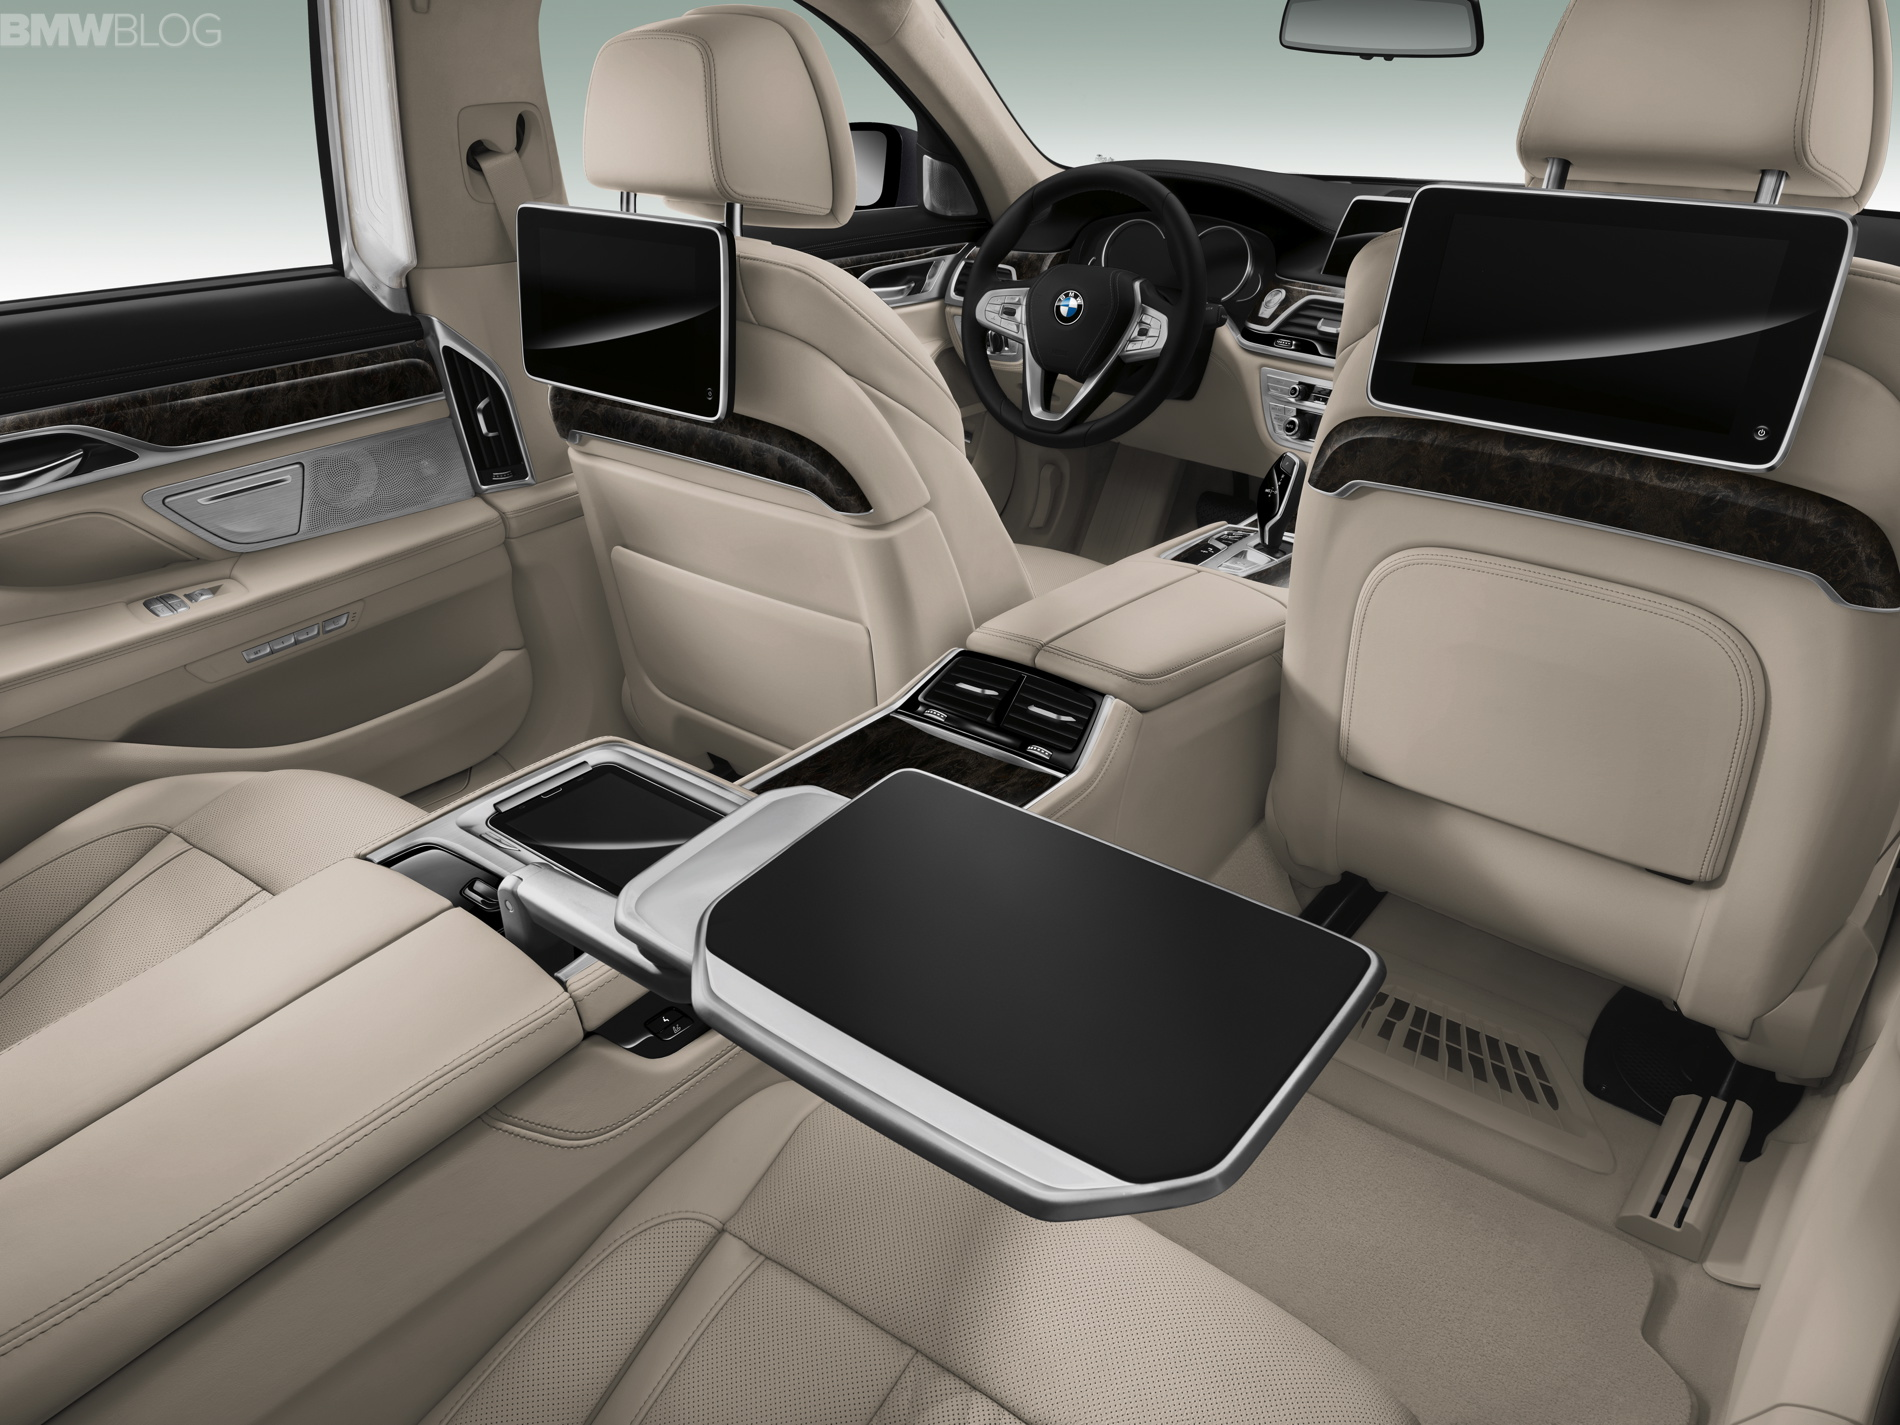 stunning-design-of-the-bmw-7-series-2015-interior-with-able-and-grey-seats-ideas-with-lcd-as-the-bmw-7-series-2015-interior